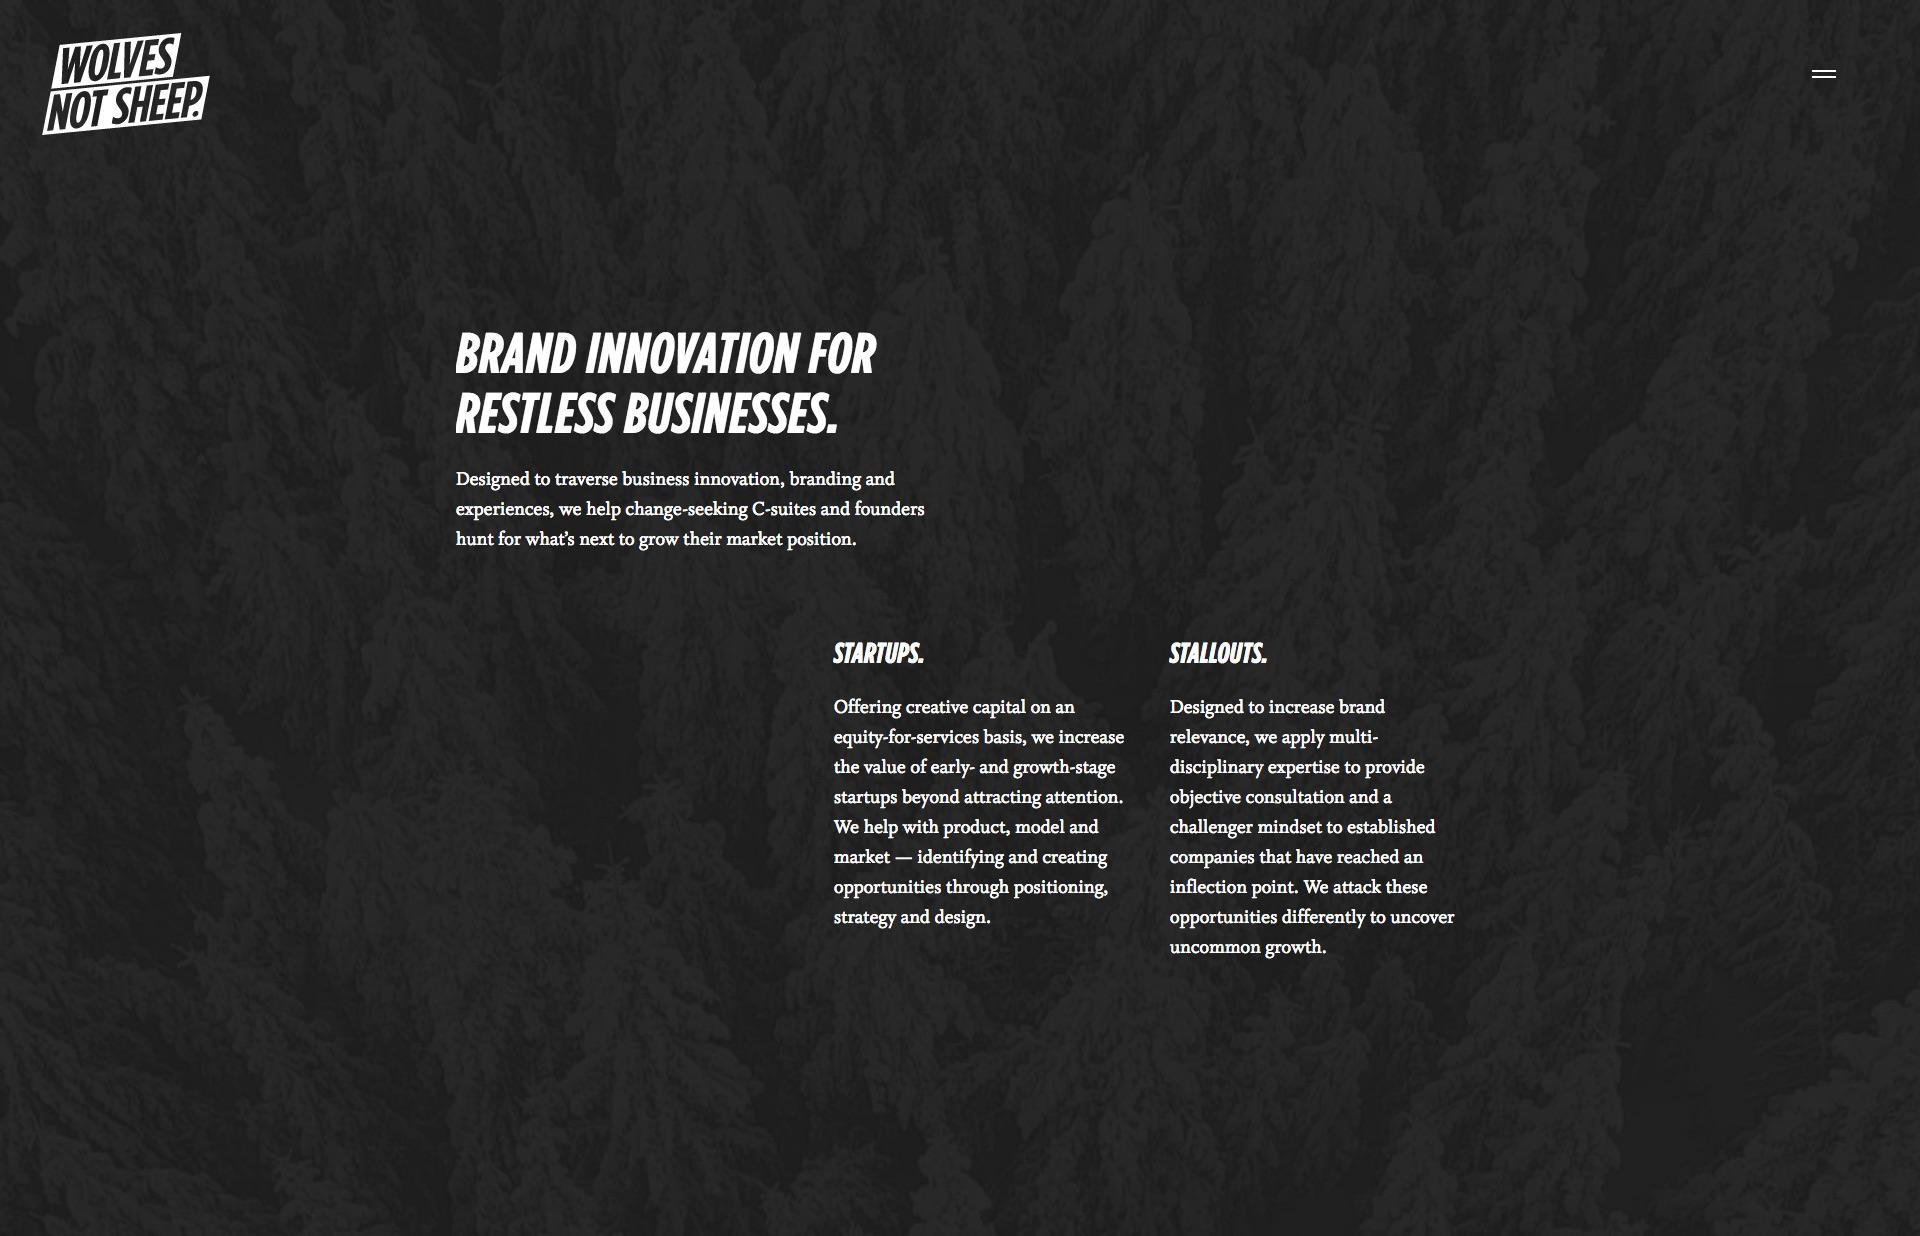 Screenshot of the website Wolves, Not Sheep., featured on The Gallery, a curated collection of minimal websites